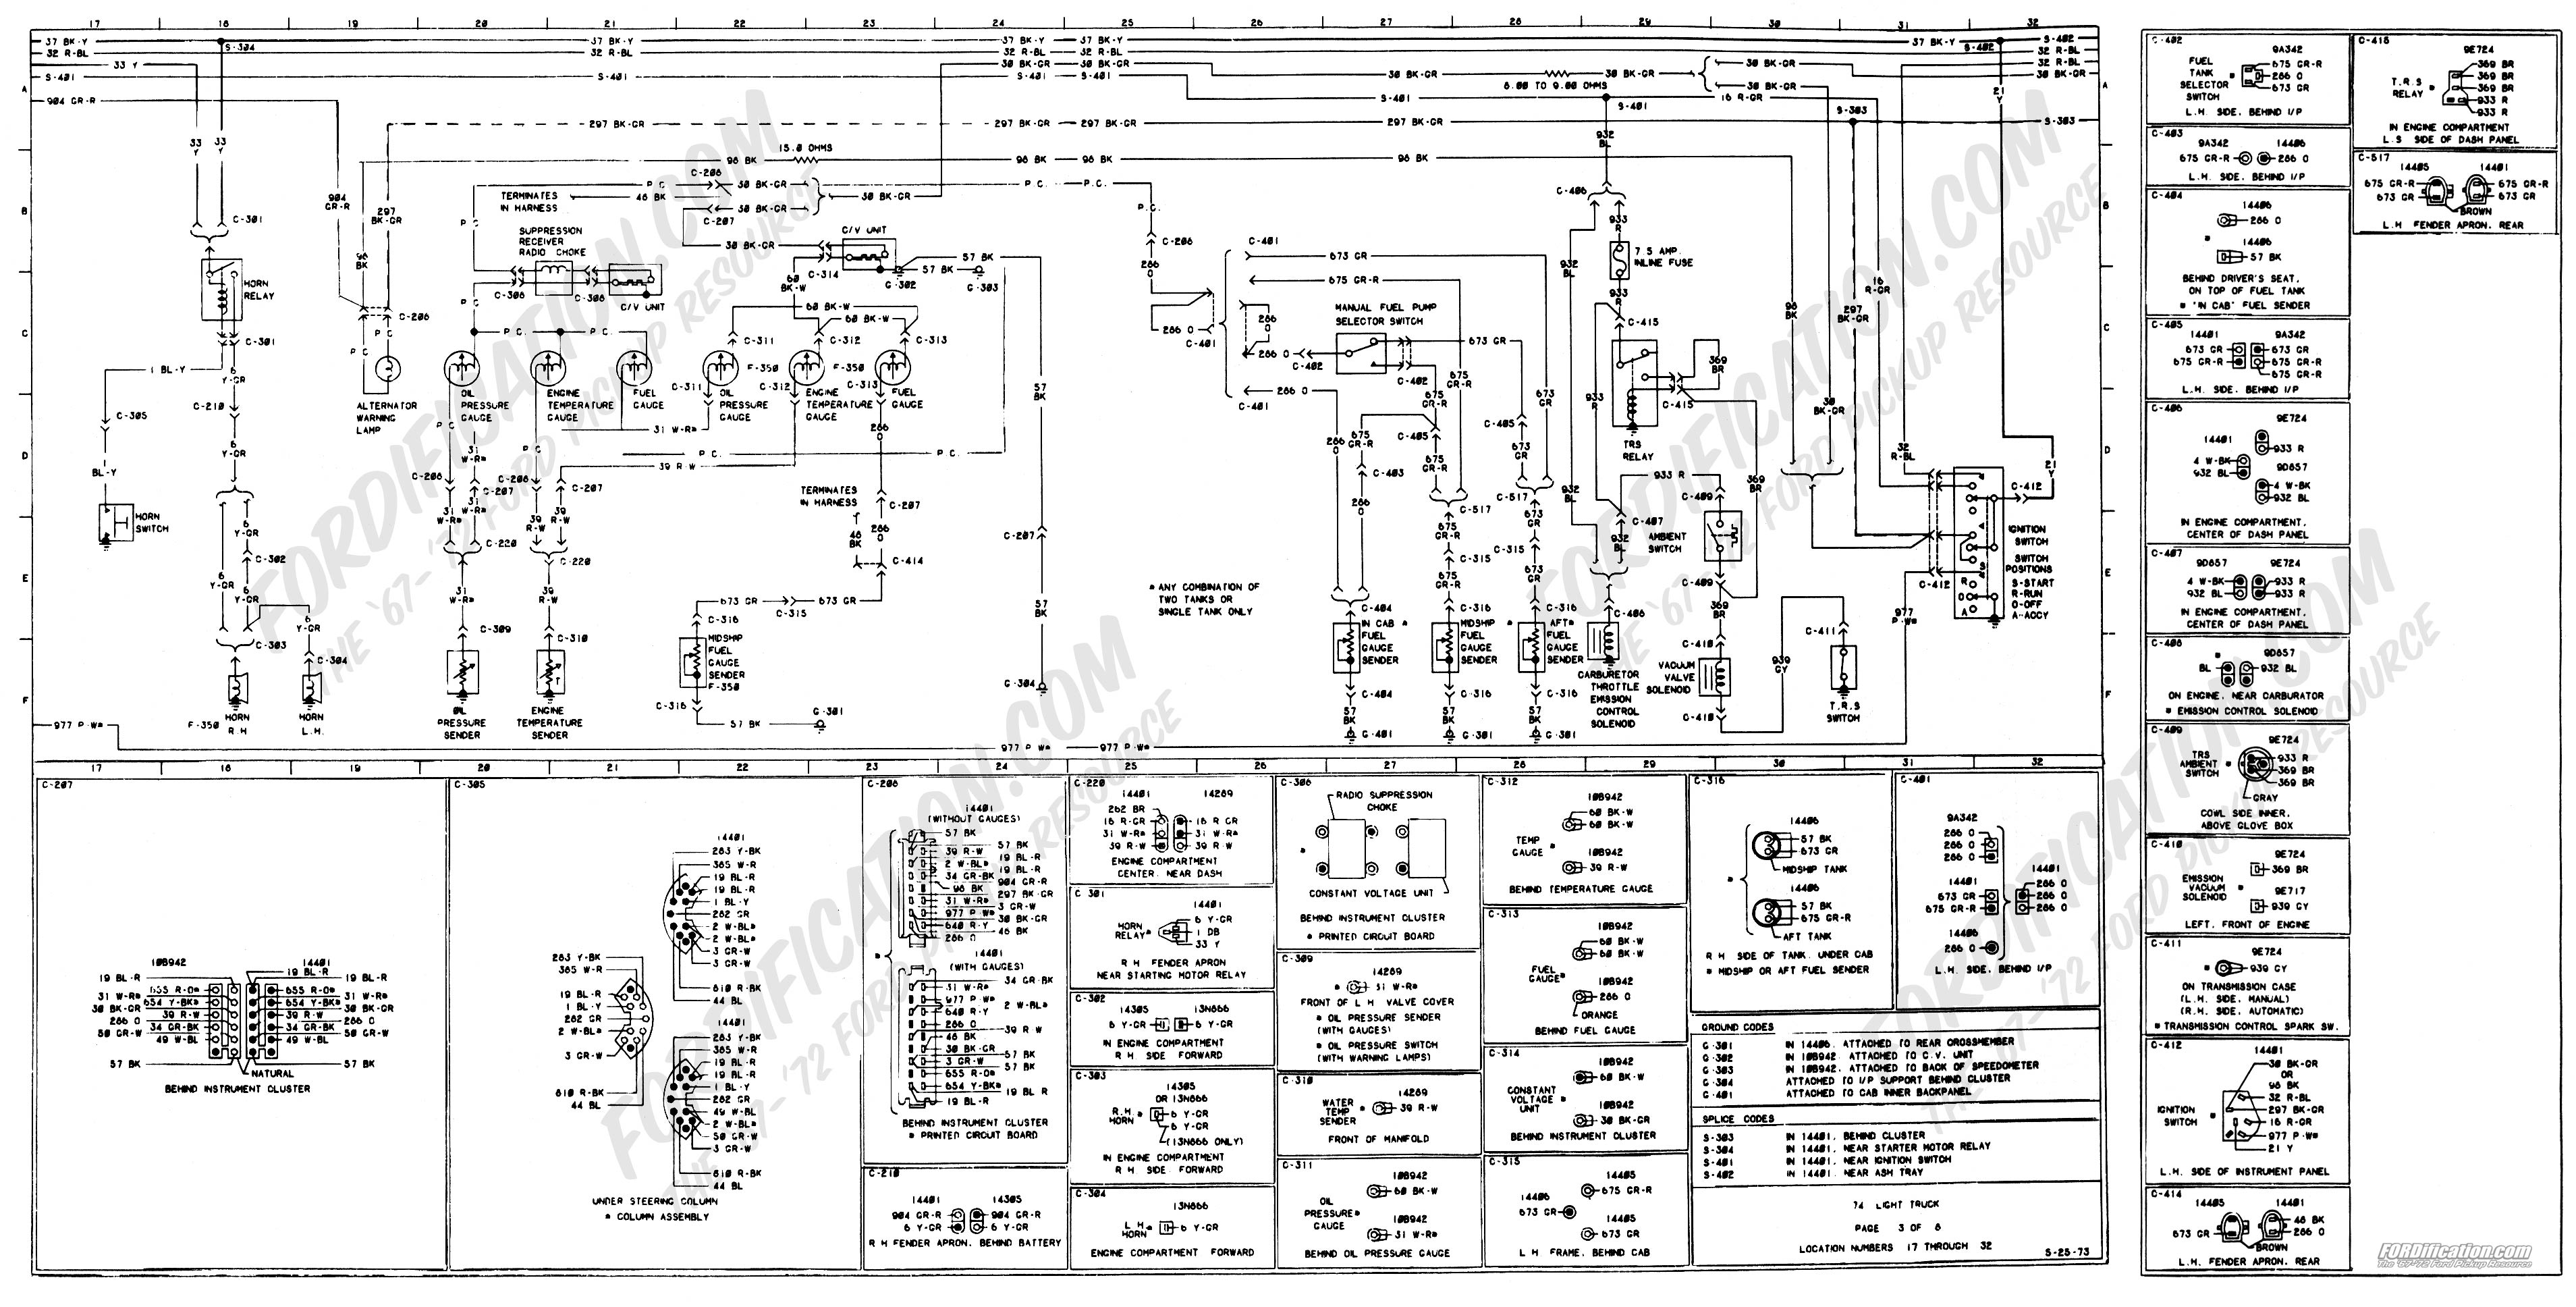 wiring_74master_3of8 1973 1979 ford truck wiring diagrams & schematics fordification net 1973 ford f100 wiring diagram at nearapp.co